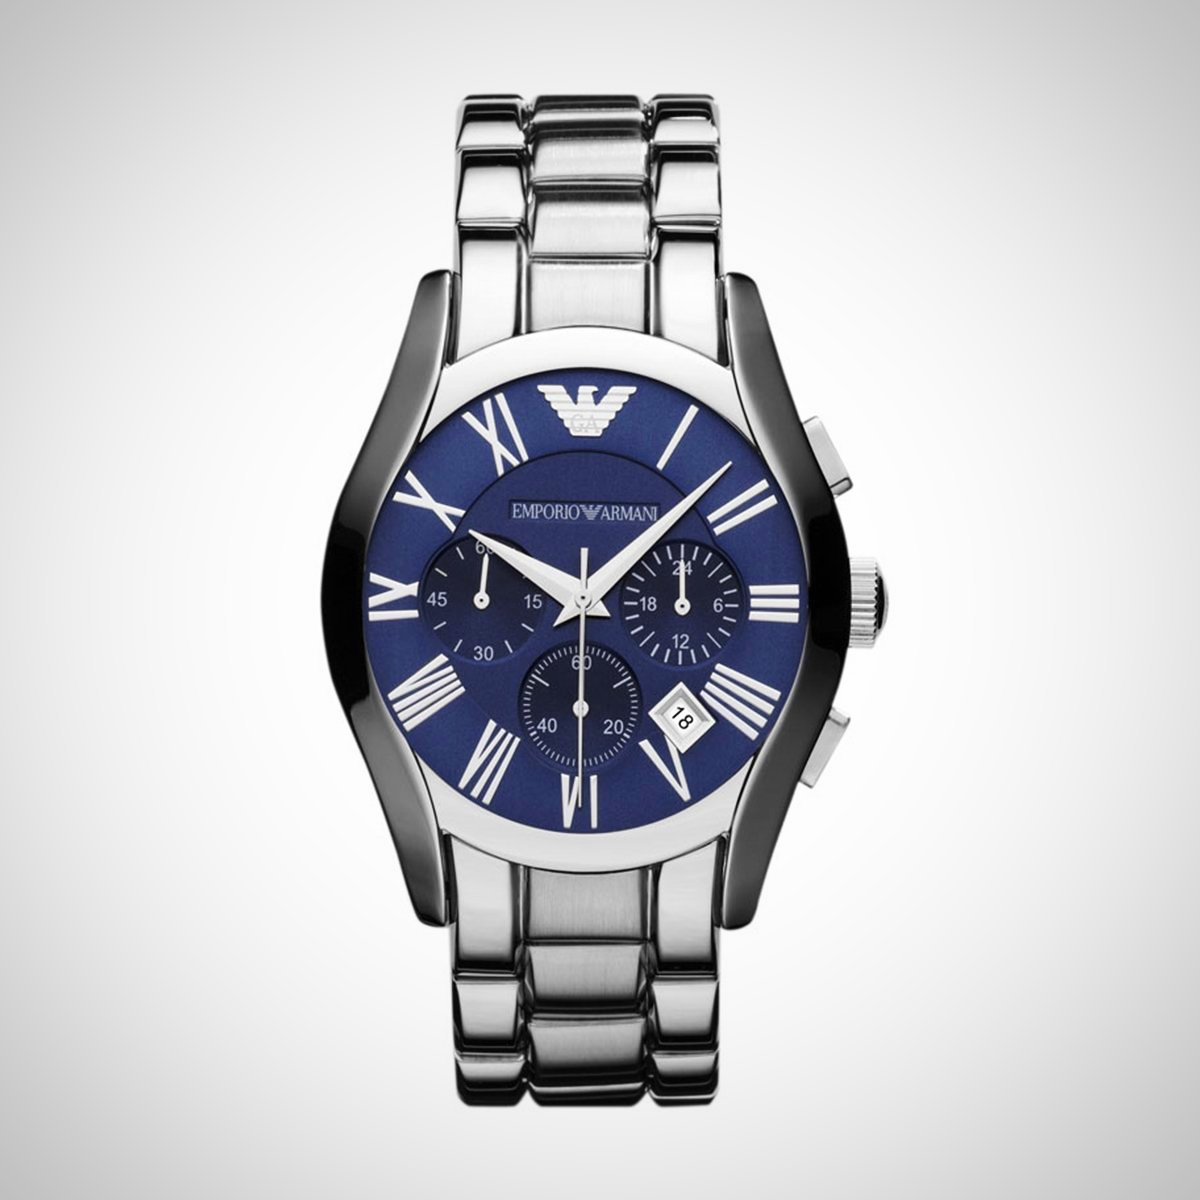 Emporio Armani AR1635 Men's Blue Chronograph Watch